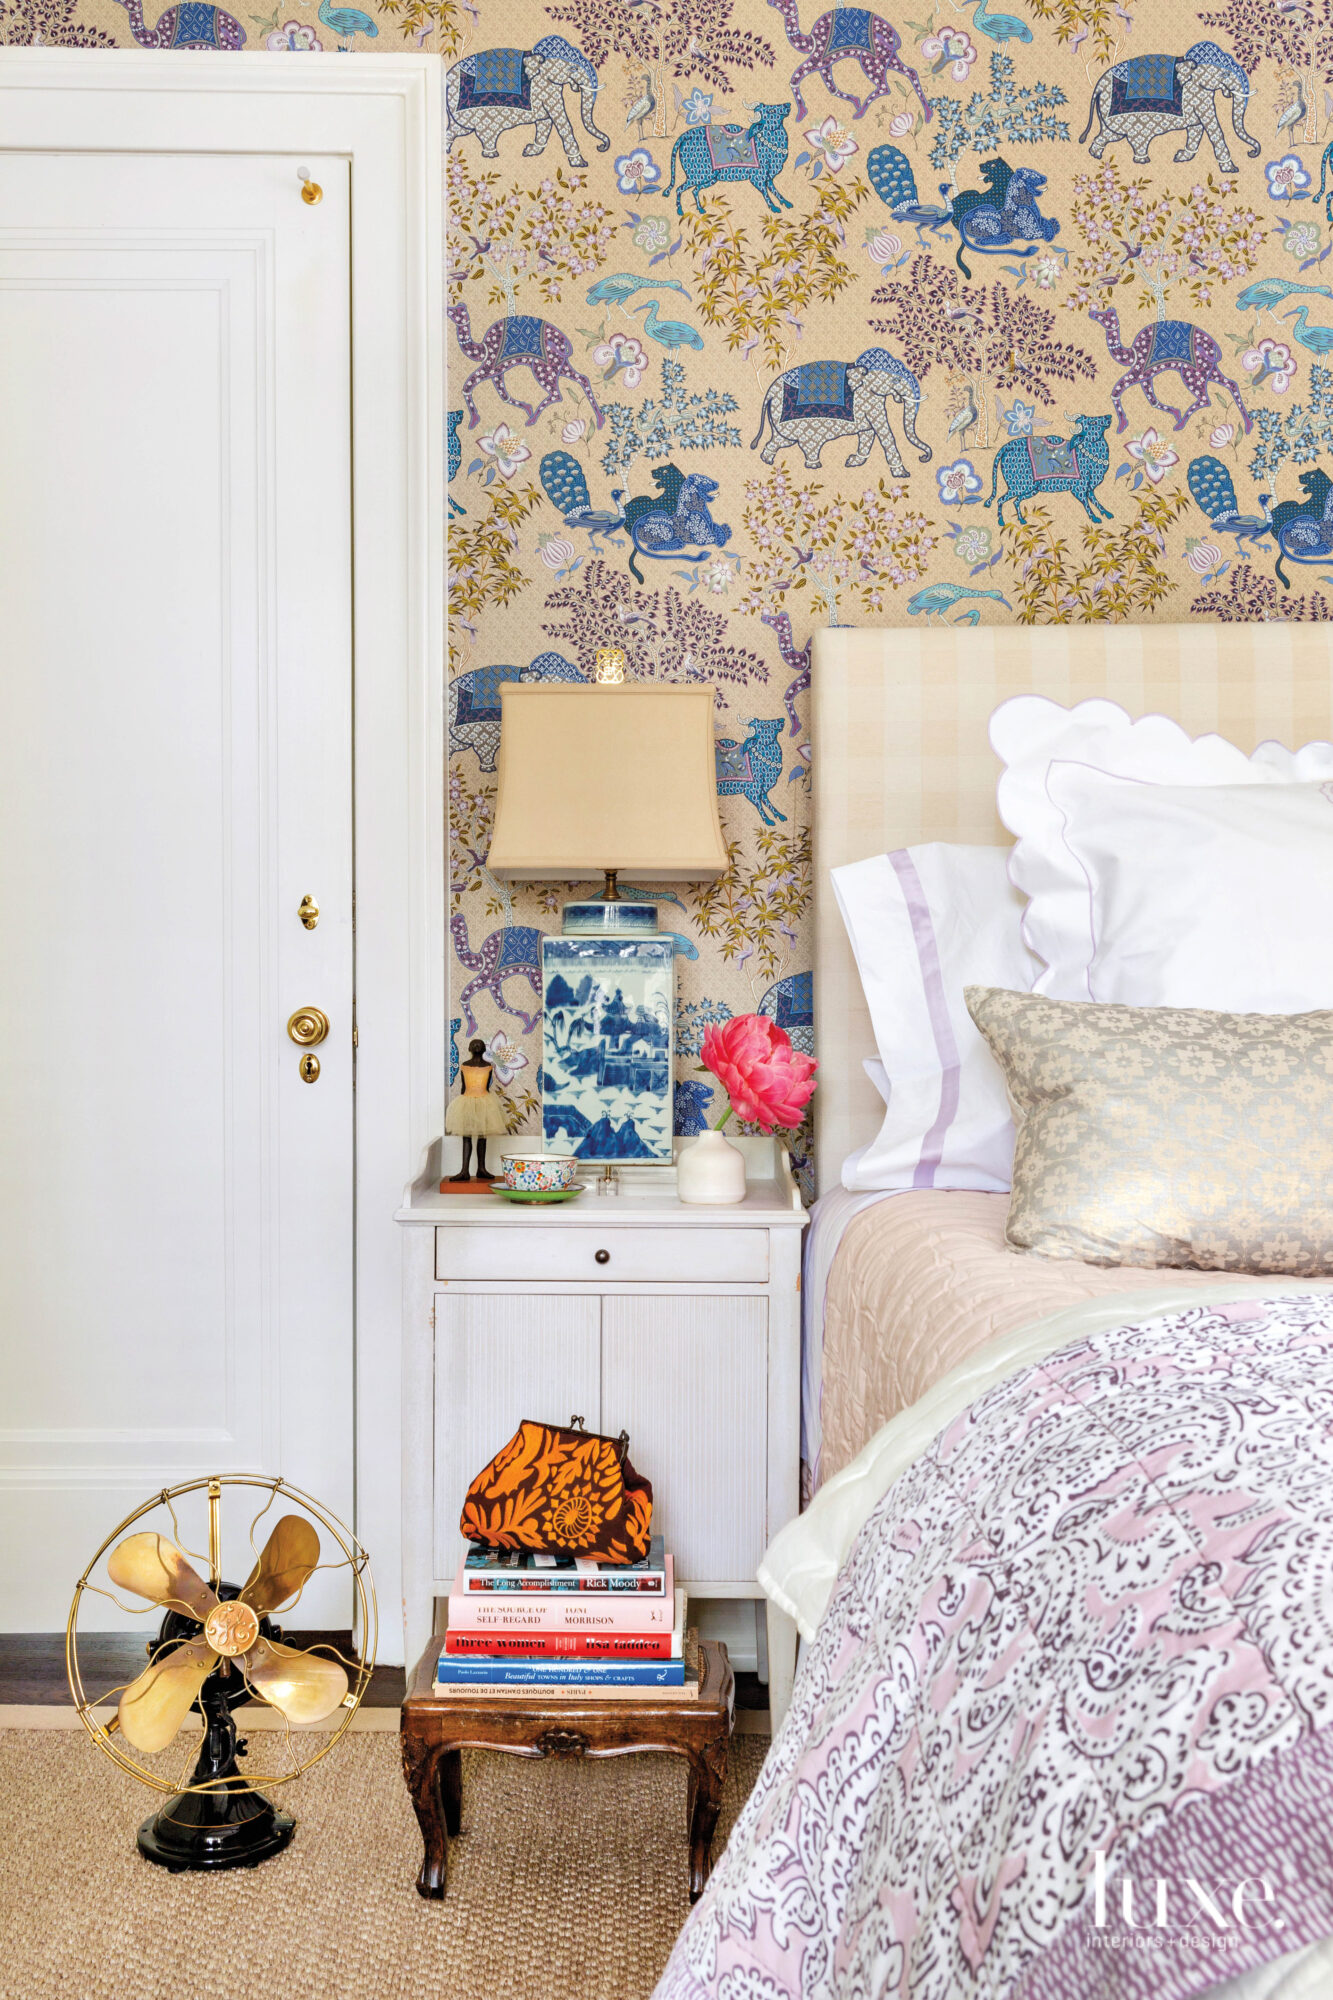 Bedroom with patterned wallpaper, a...